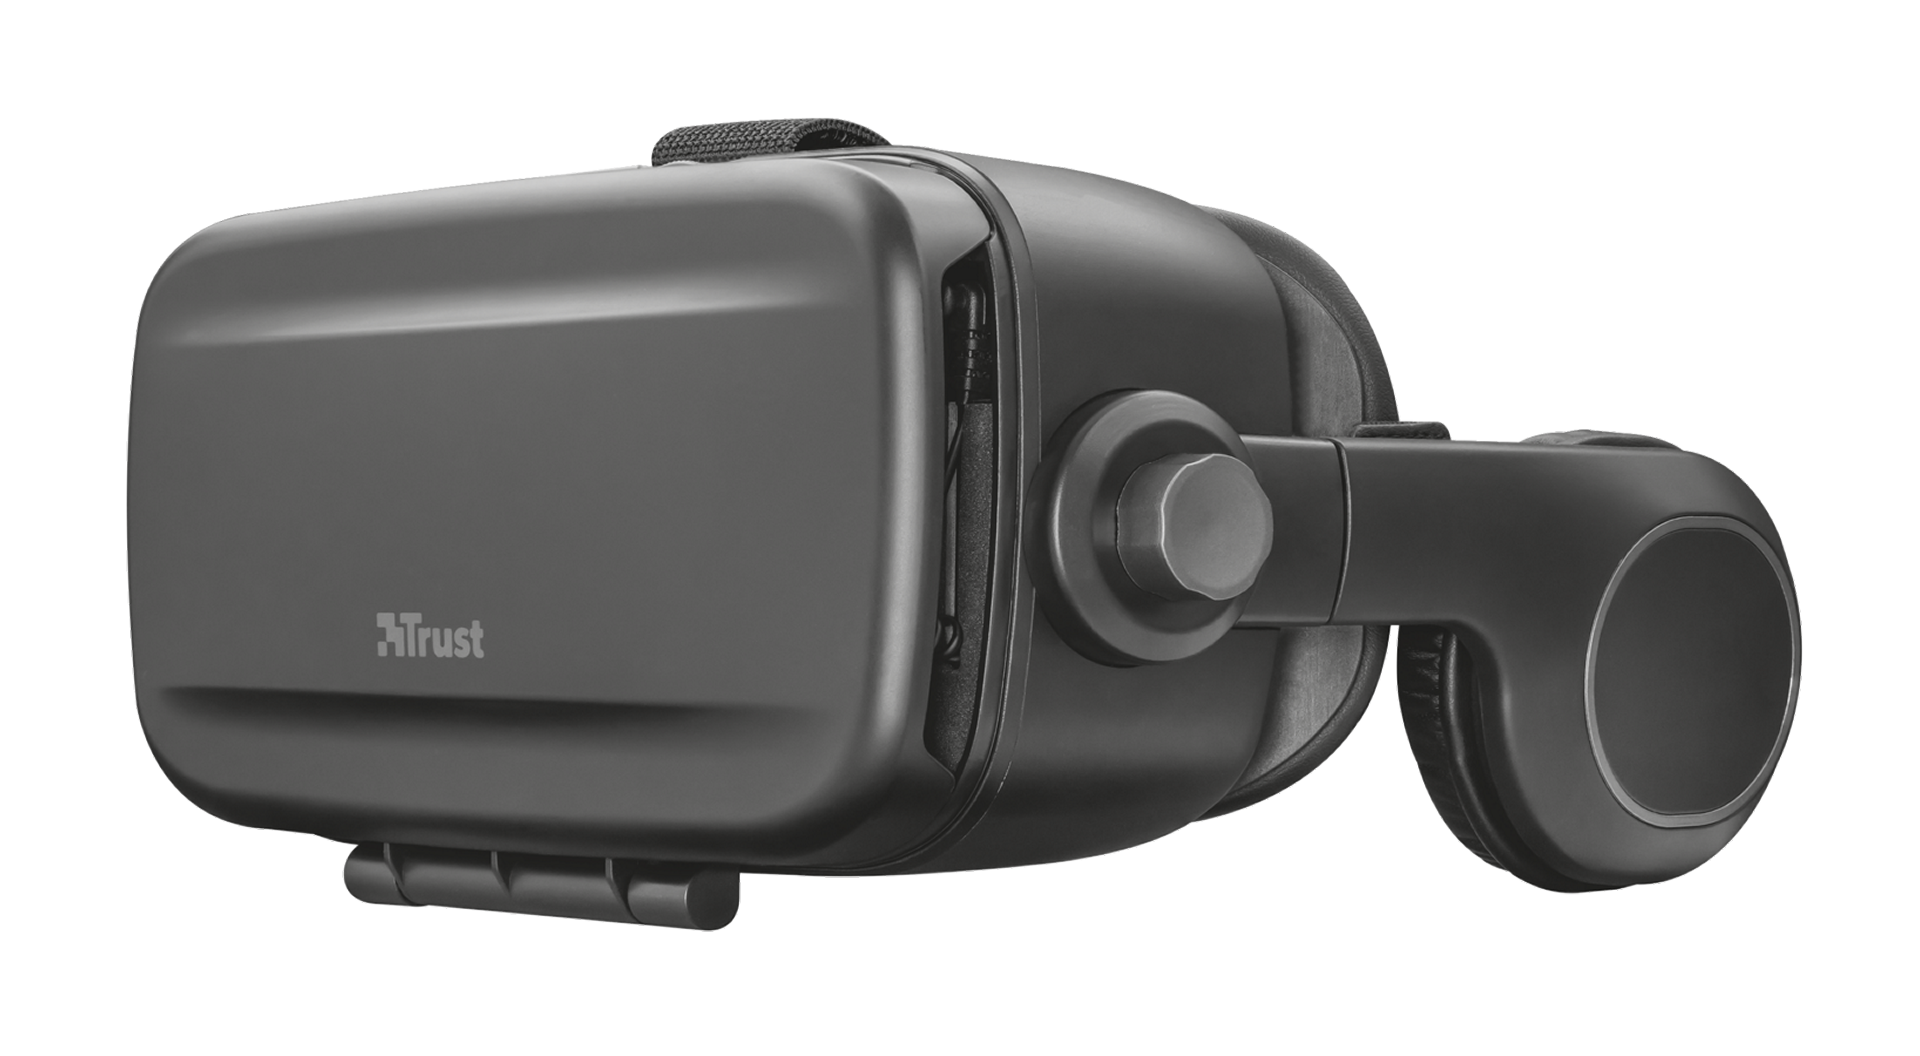 TRUST Exora Virtual Reality Glasses for smartphone